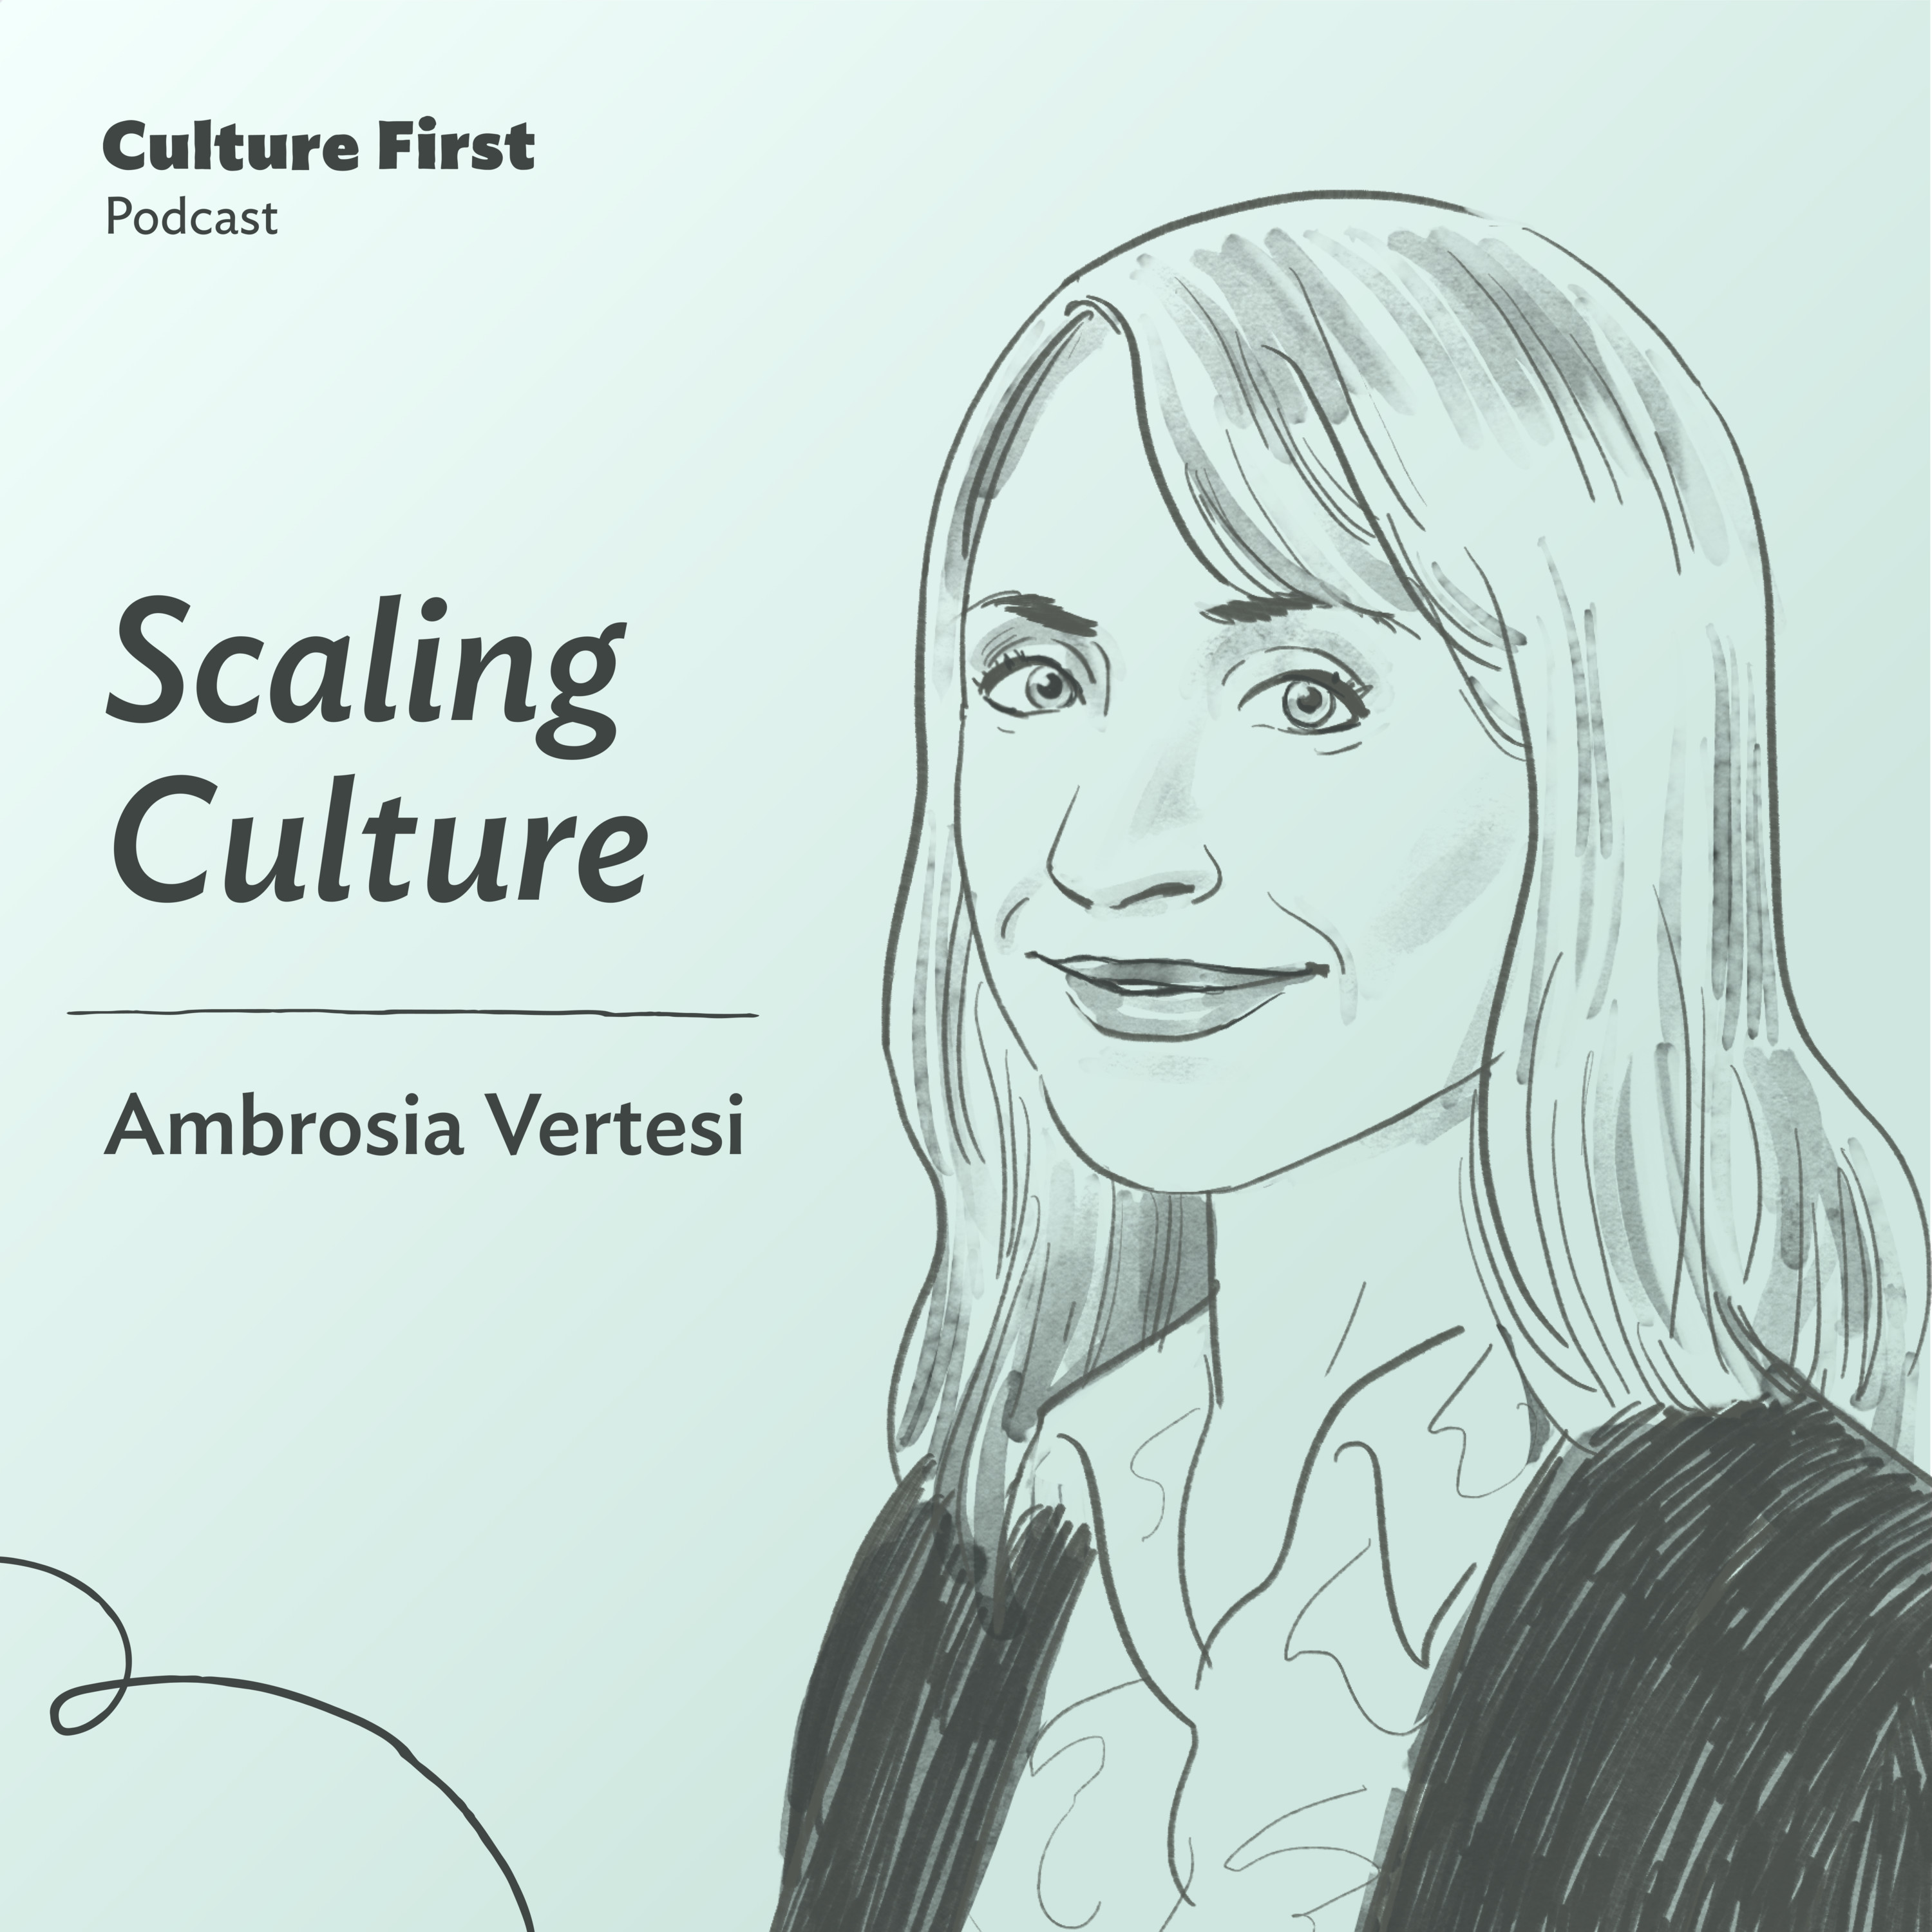 Scaling Culture, with Ambrosia Vertesi